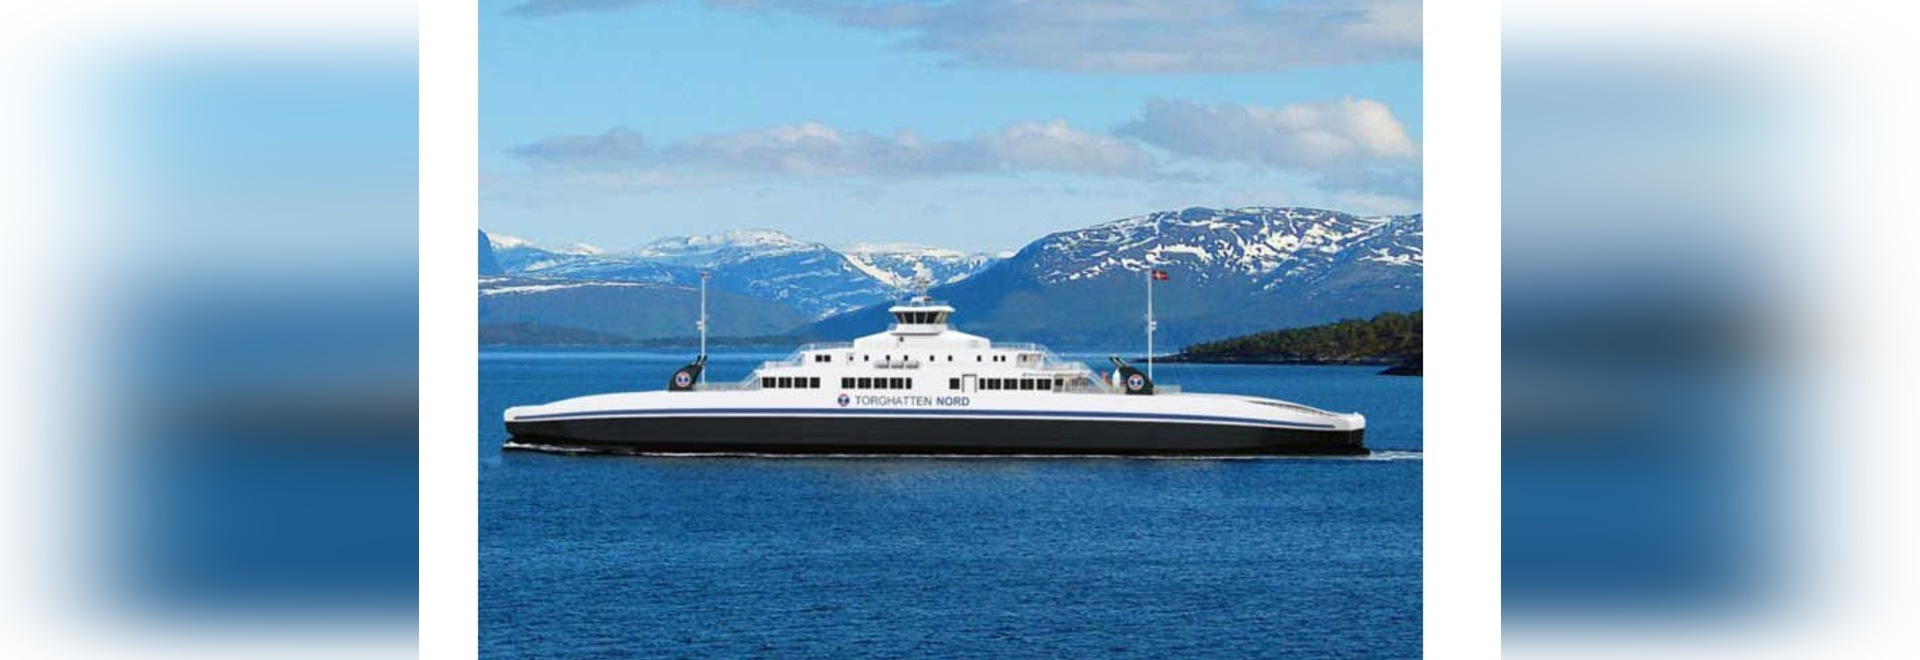 Vard to build two LNG fueled ferries for Torghatten Nord